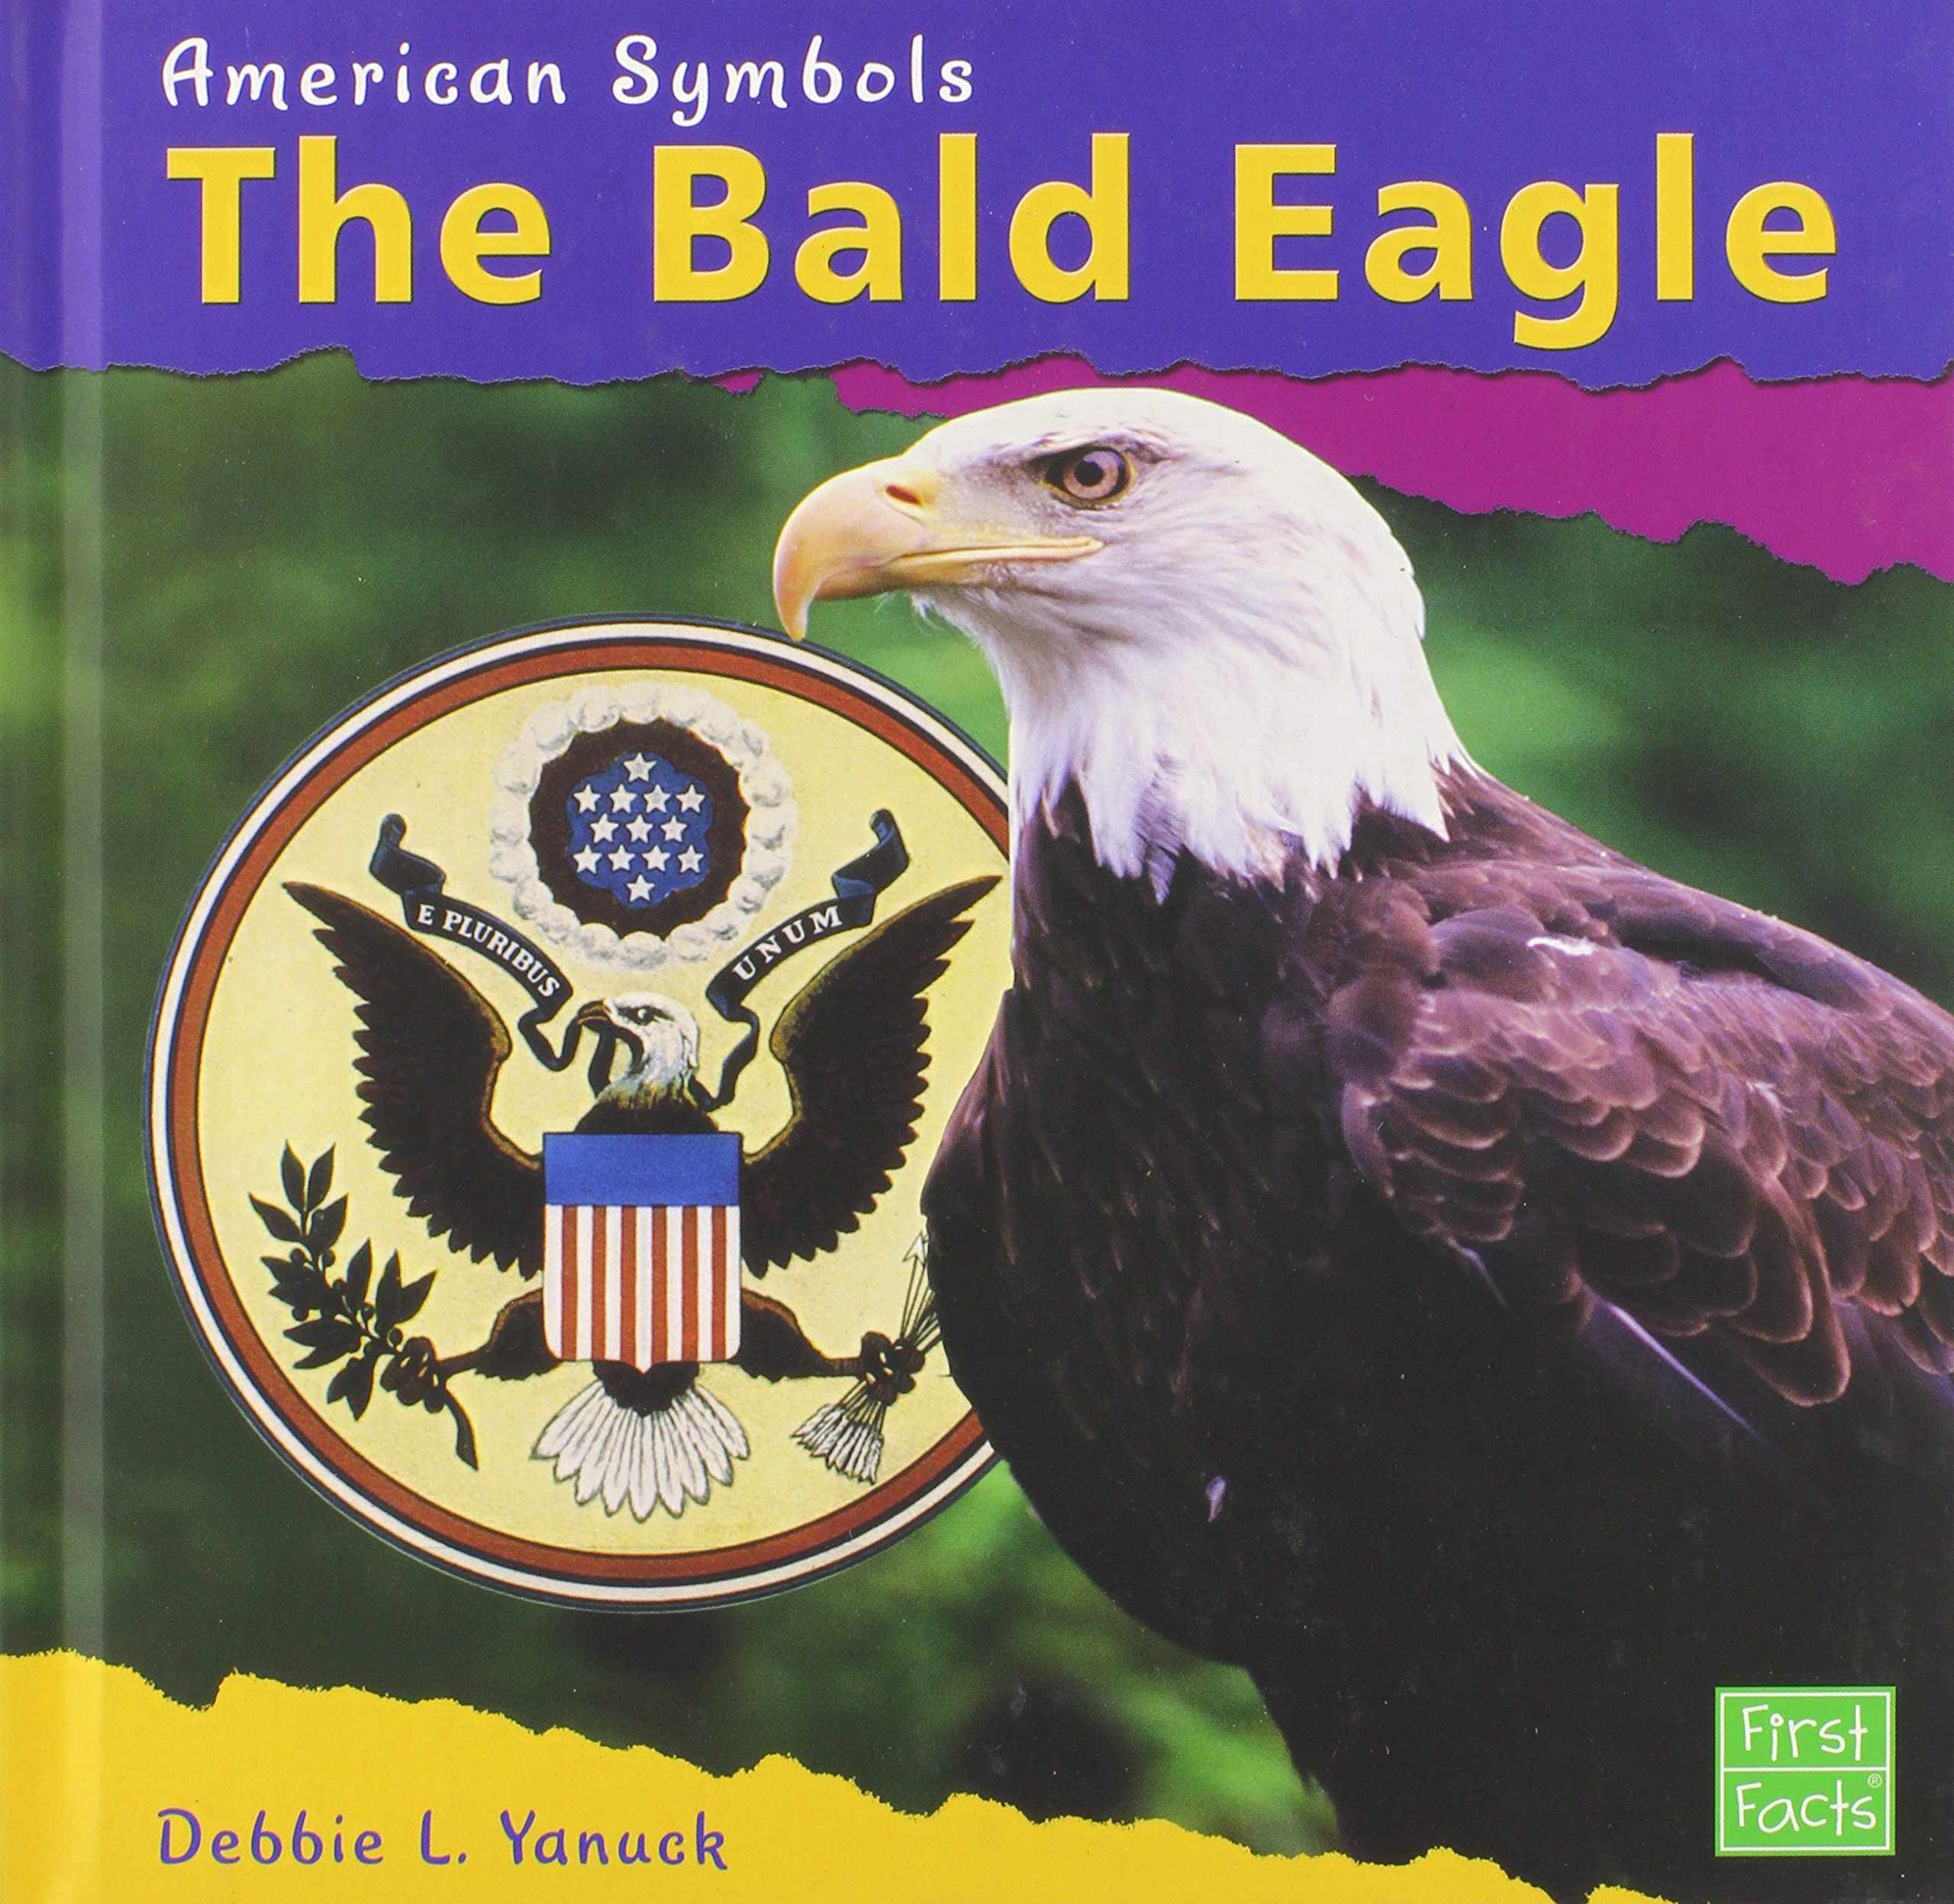 The bald eagle american symbols debbie l yanuck 9780736816298 the bald eagle american symbols debbie l yanuck 9780736816298 amazon books biocorpaavc